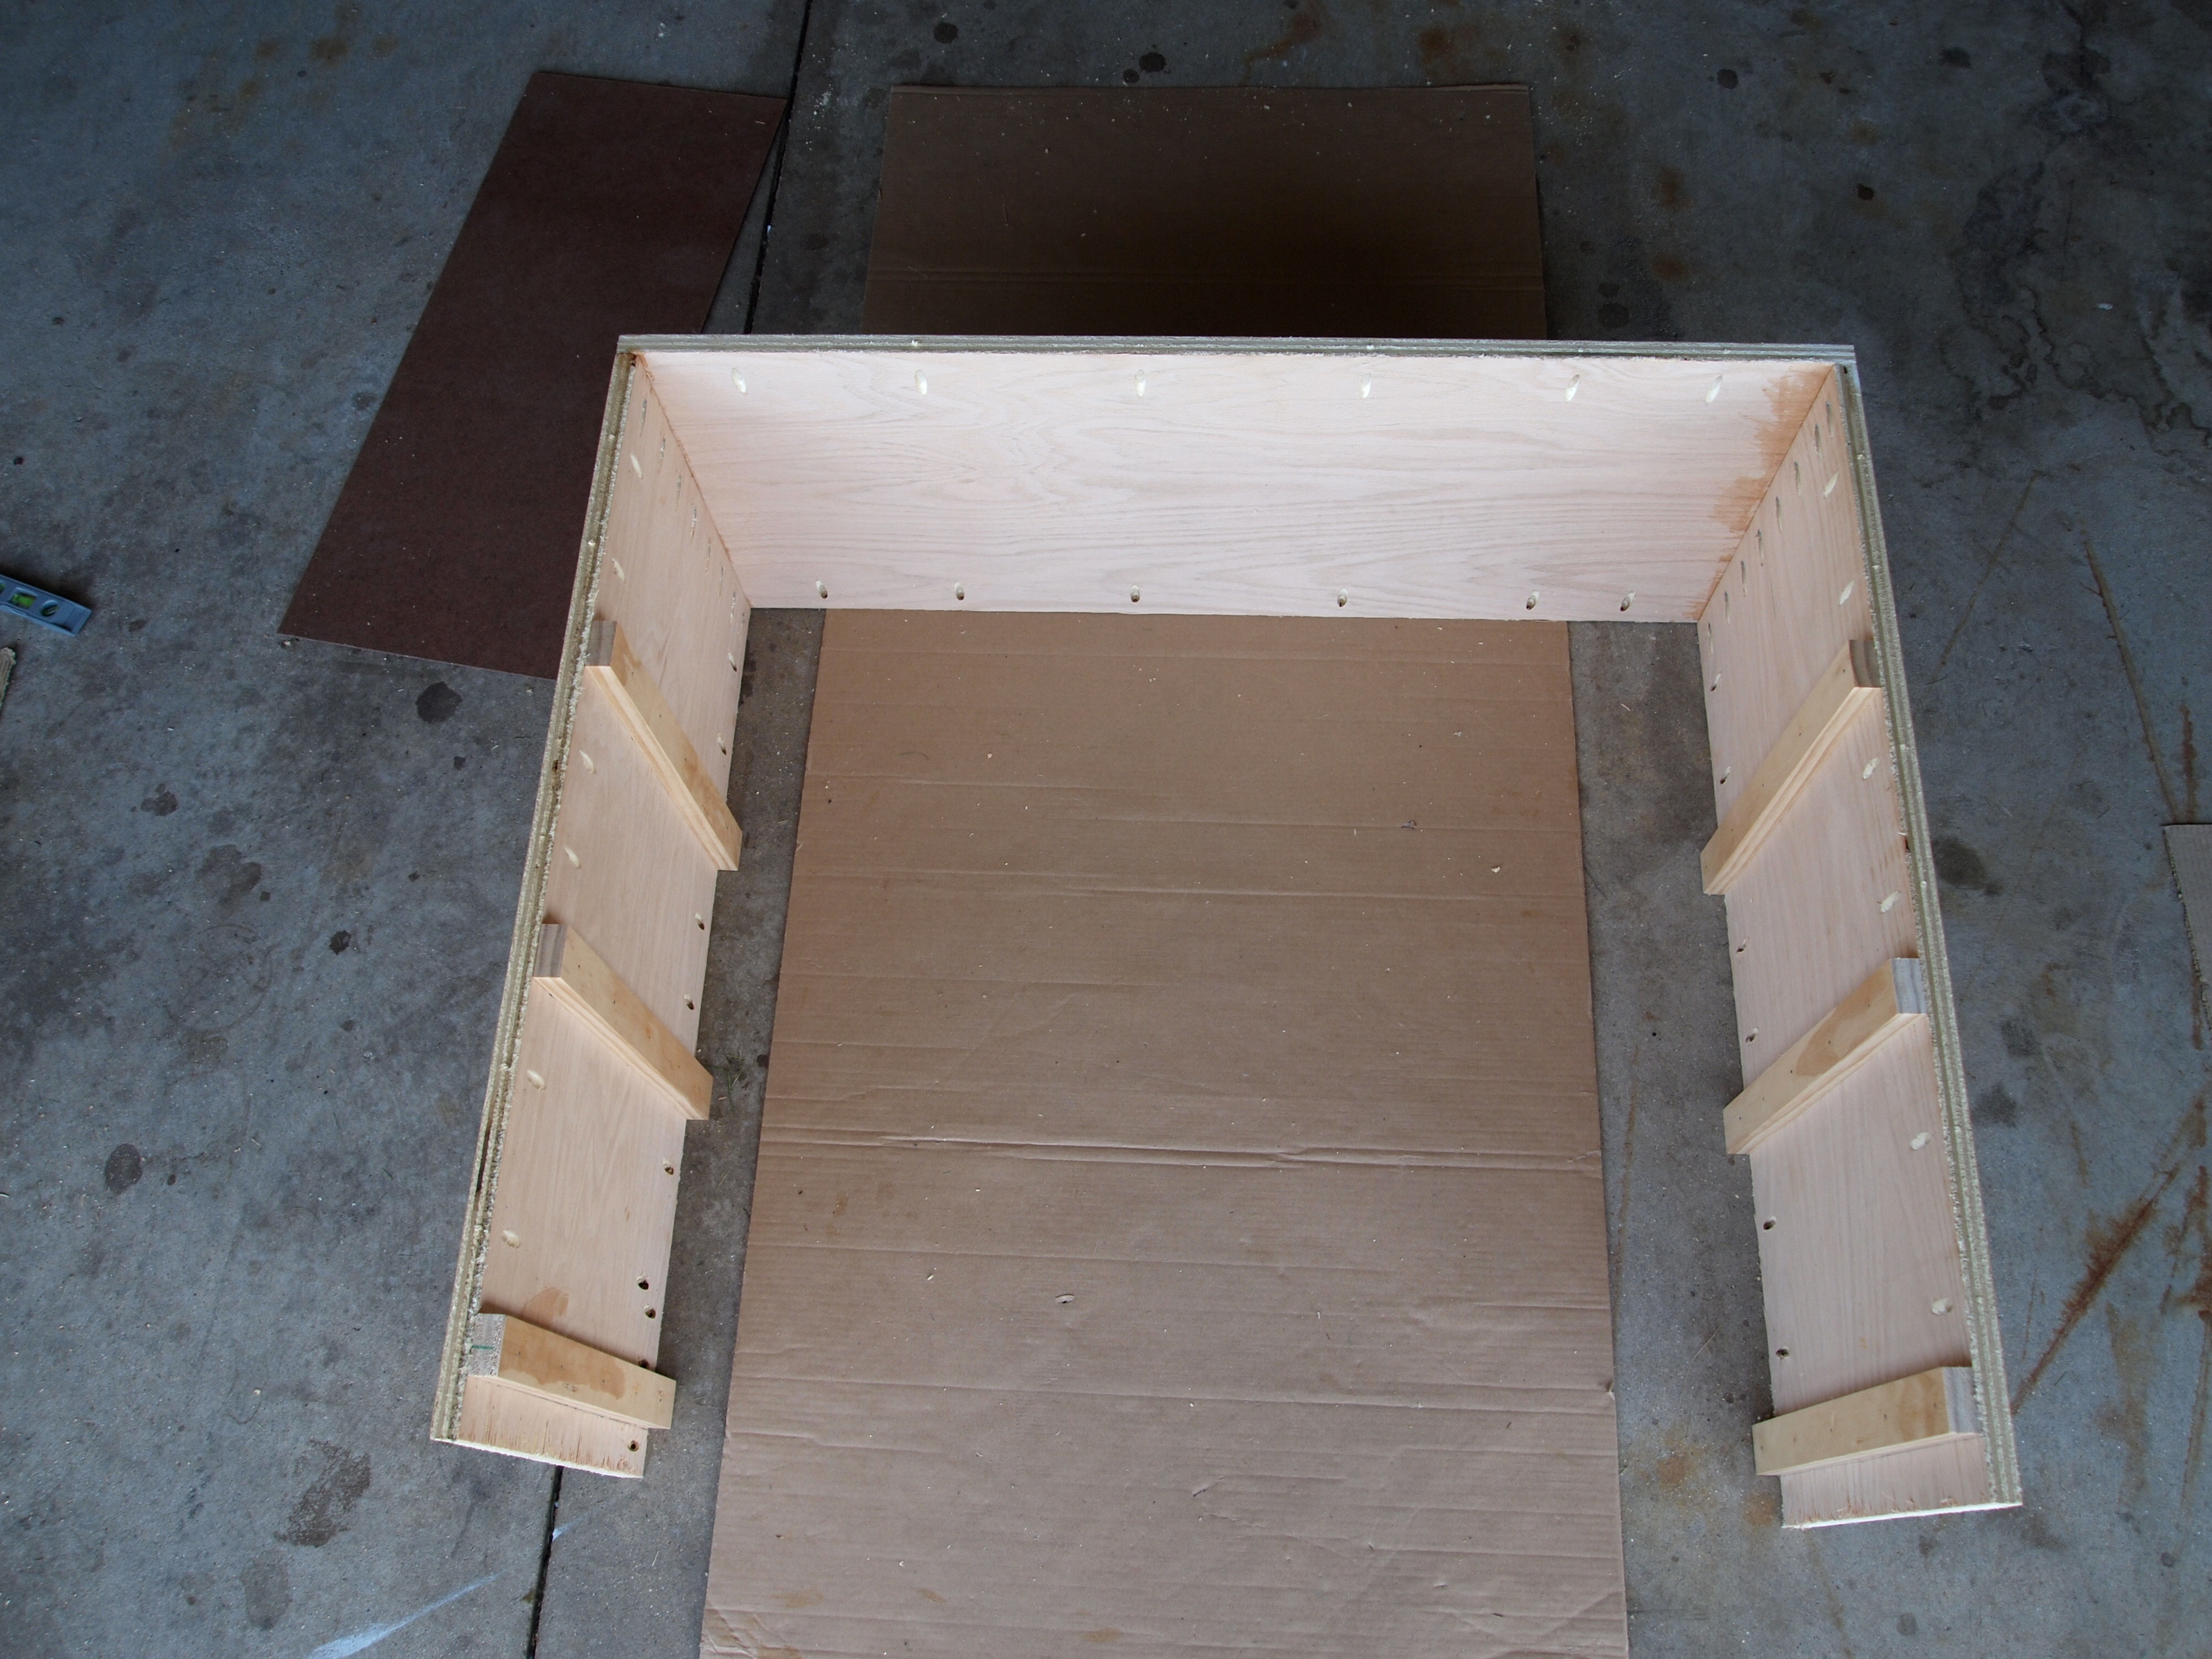 Picture of Step 1 - Assembling the Basic Frame